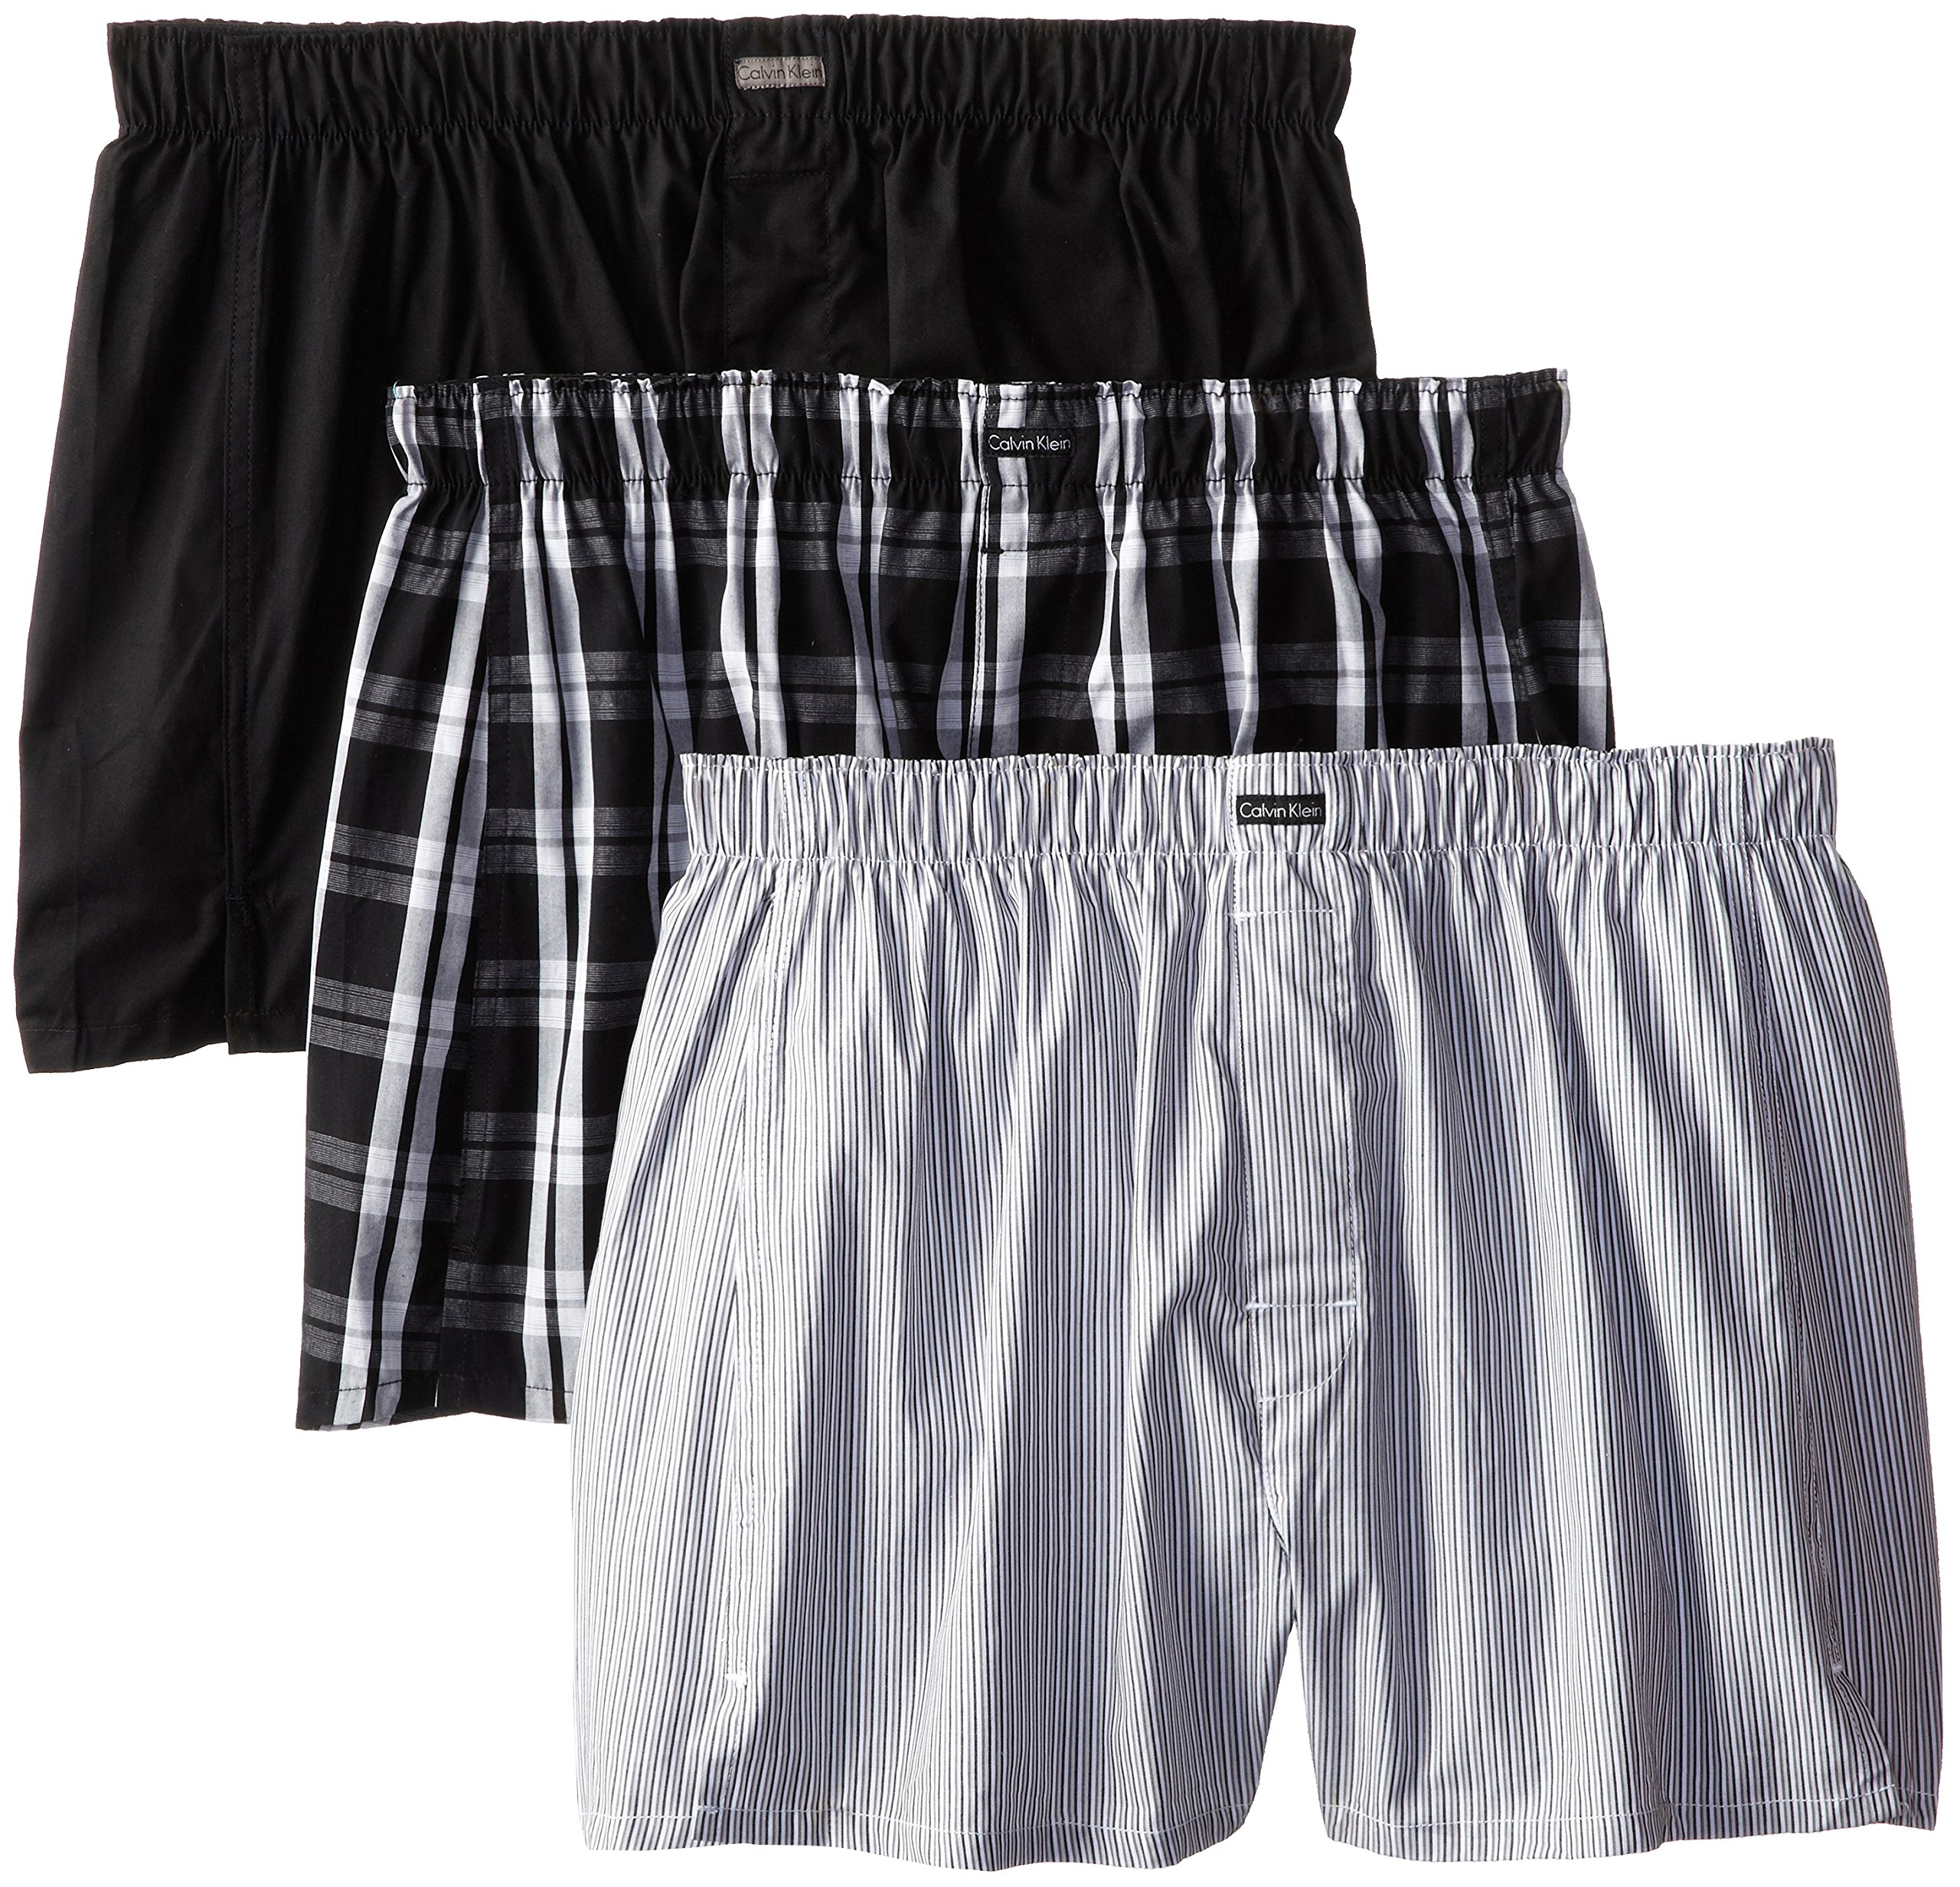 Calvin Klein Men's Cotton Classics 3 Pack Boxers, Montague Stripe/Black/Morgan Plaid, Medium